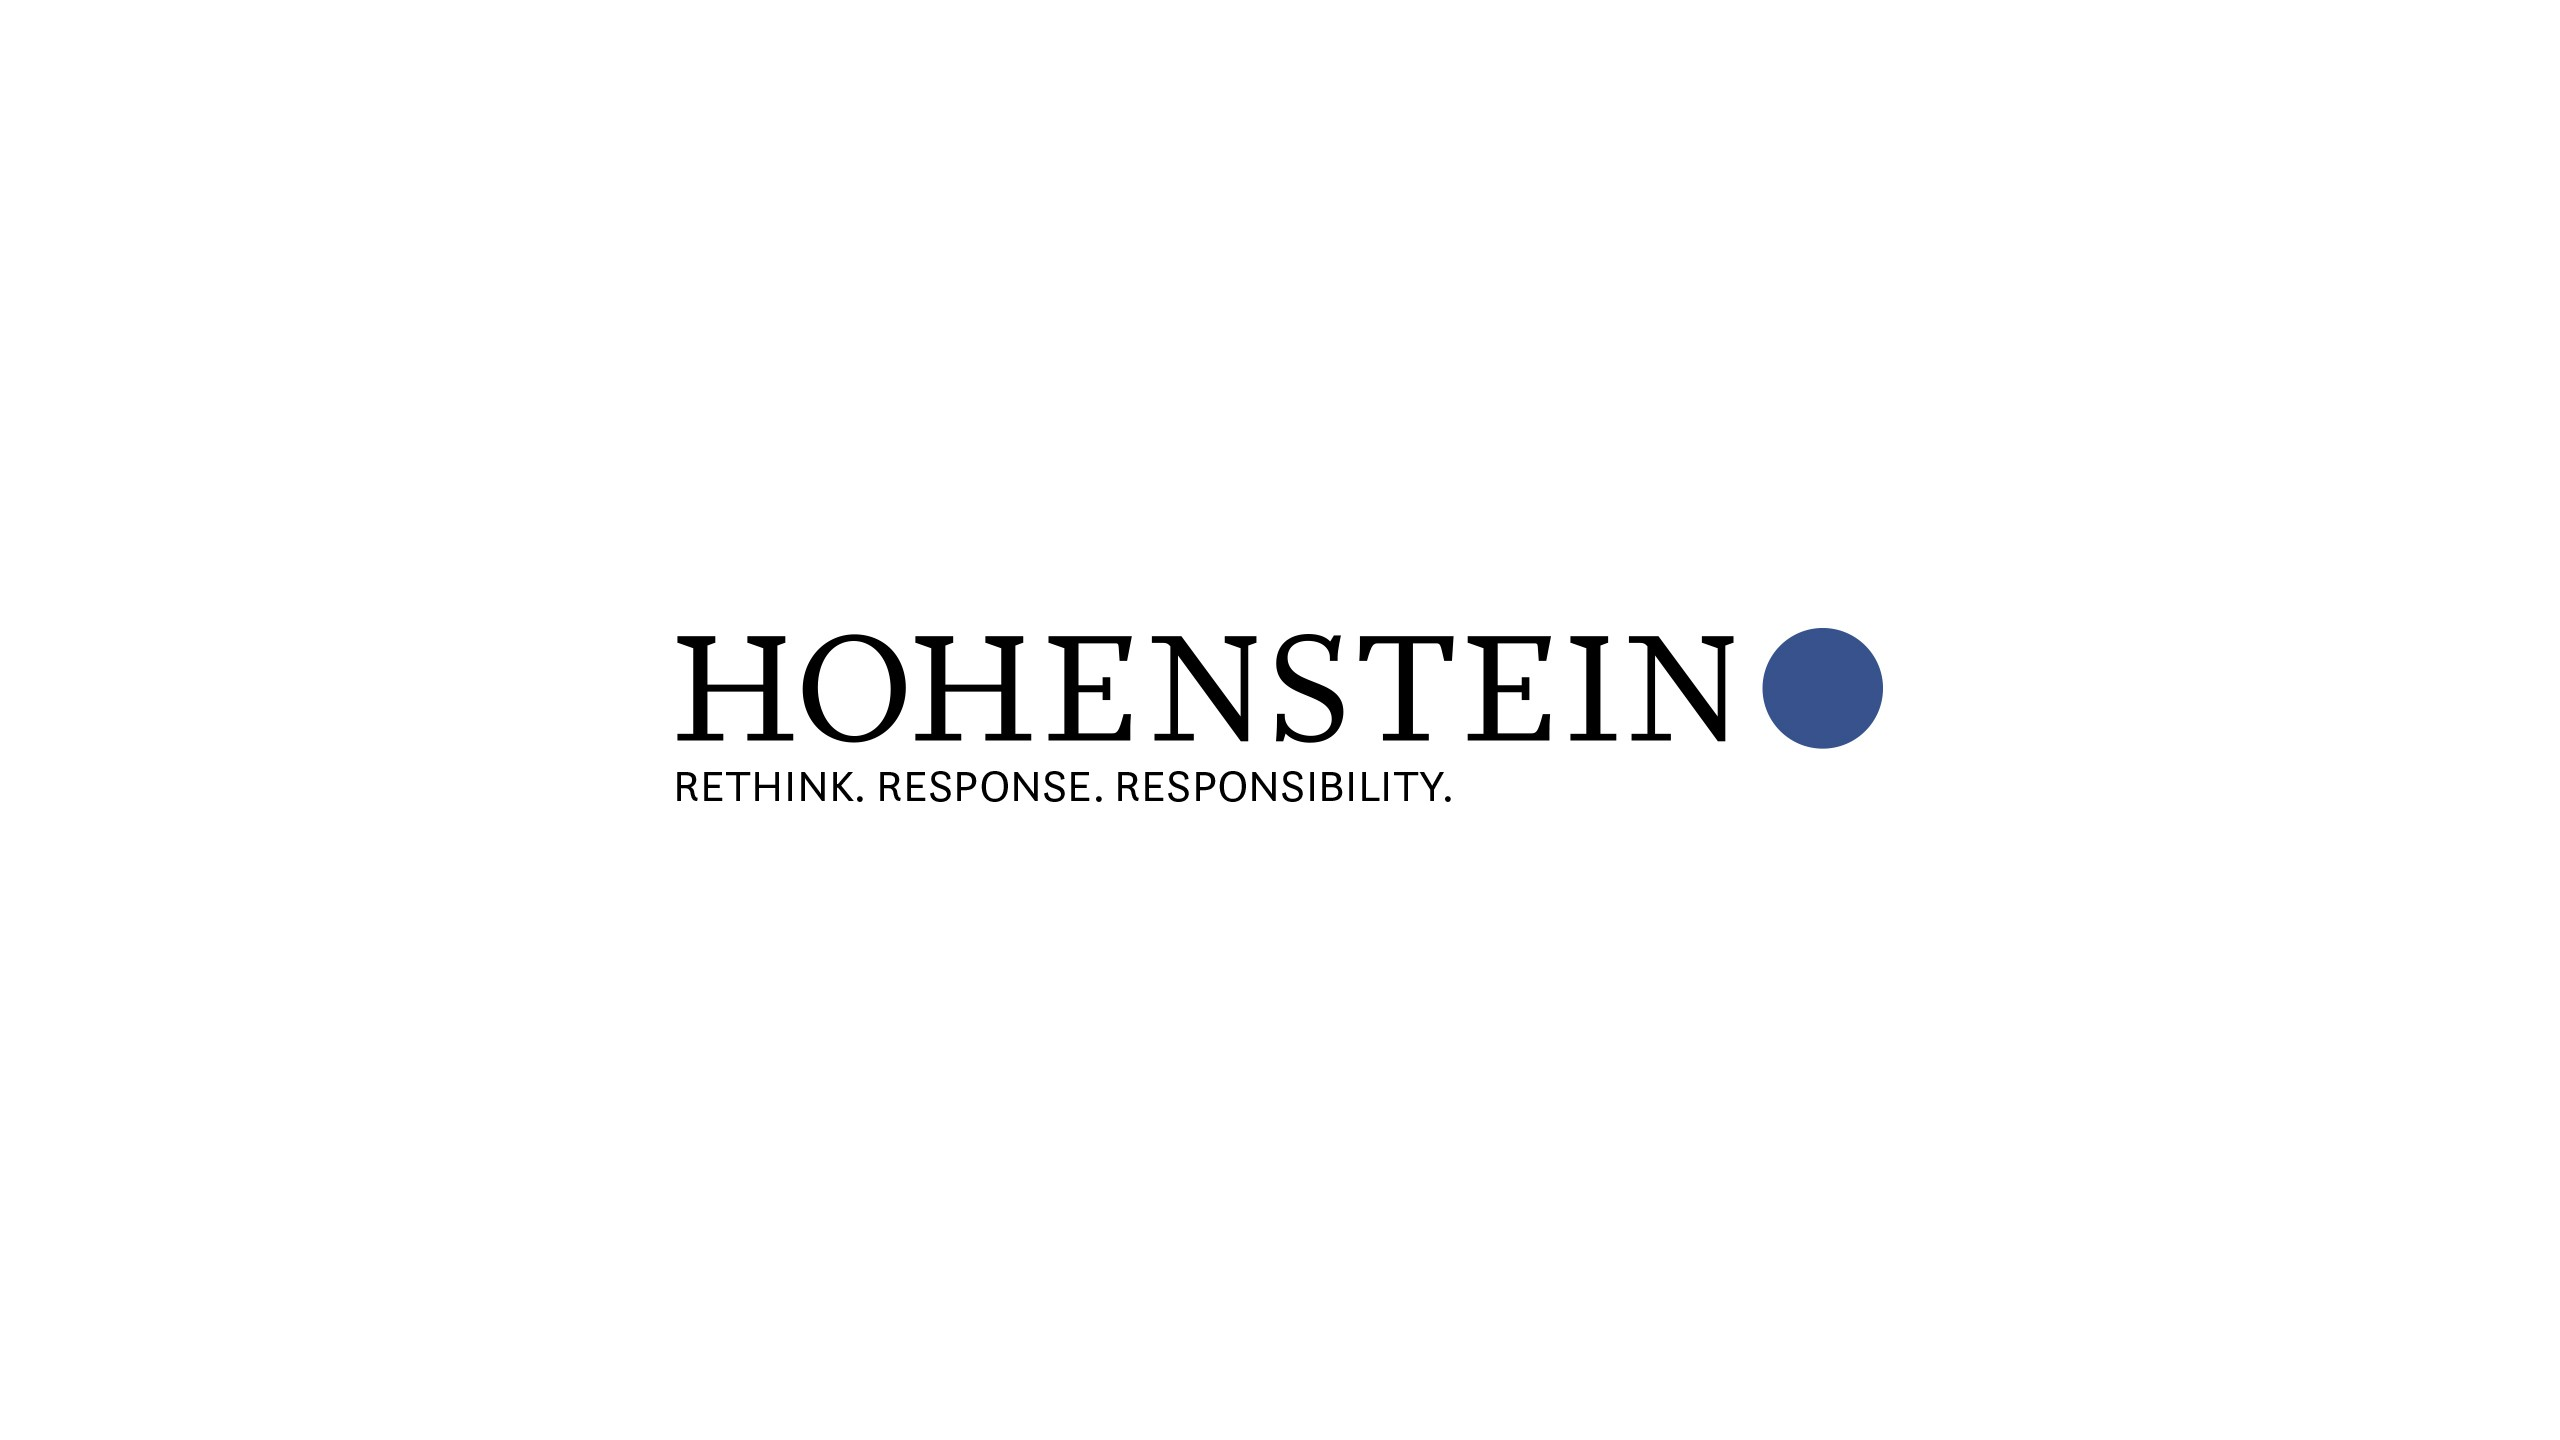 Hohenstein introduces quality label for Tested Community Masks